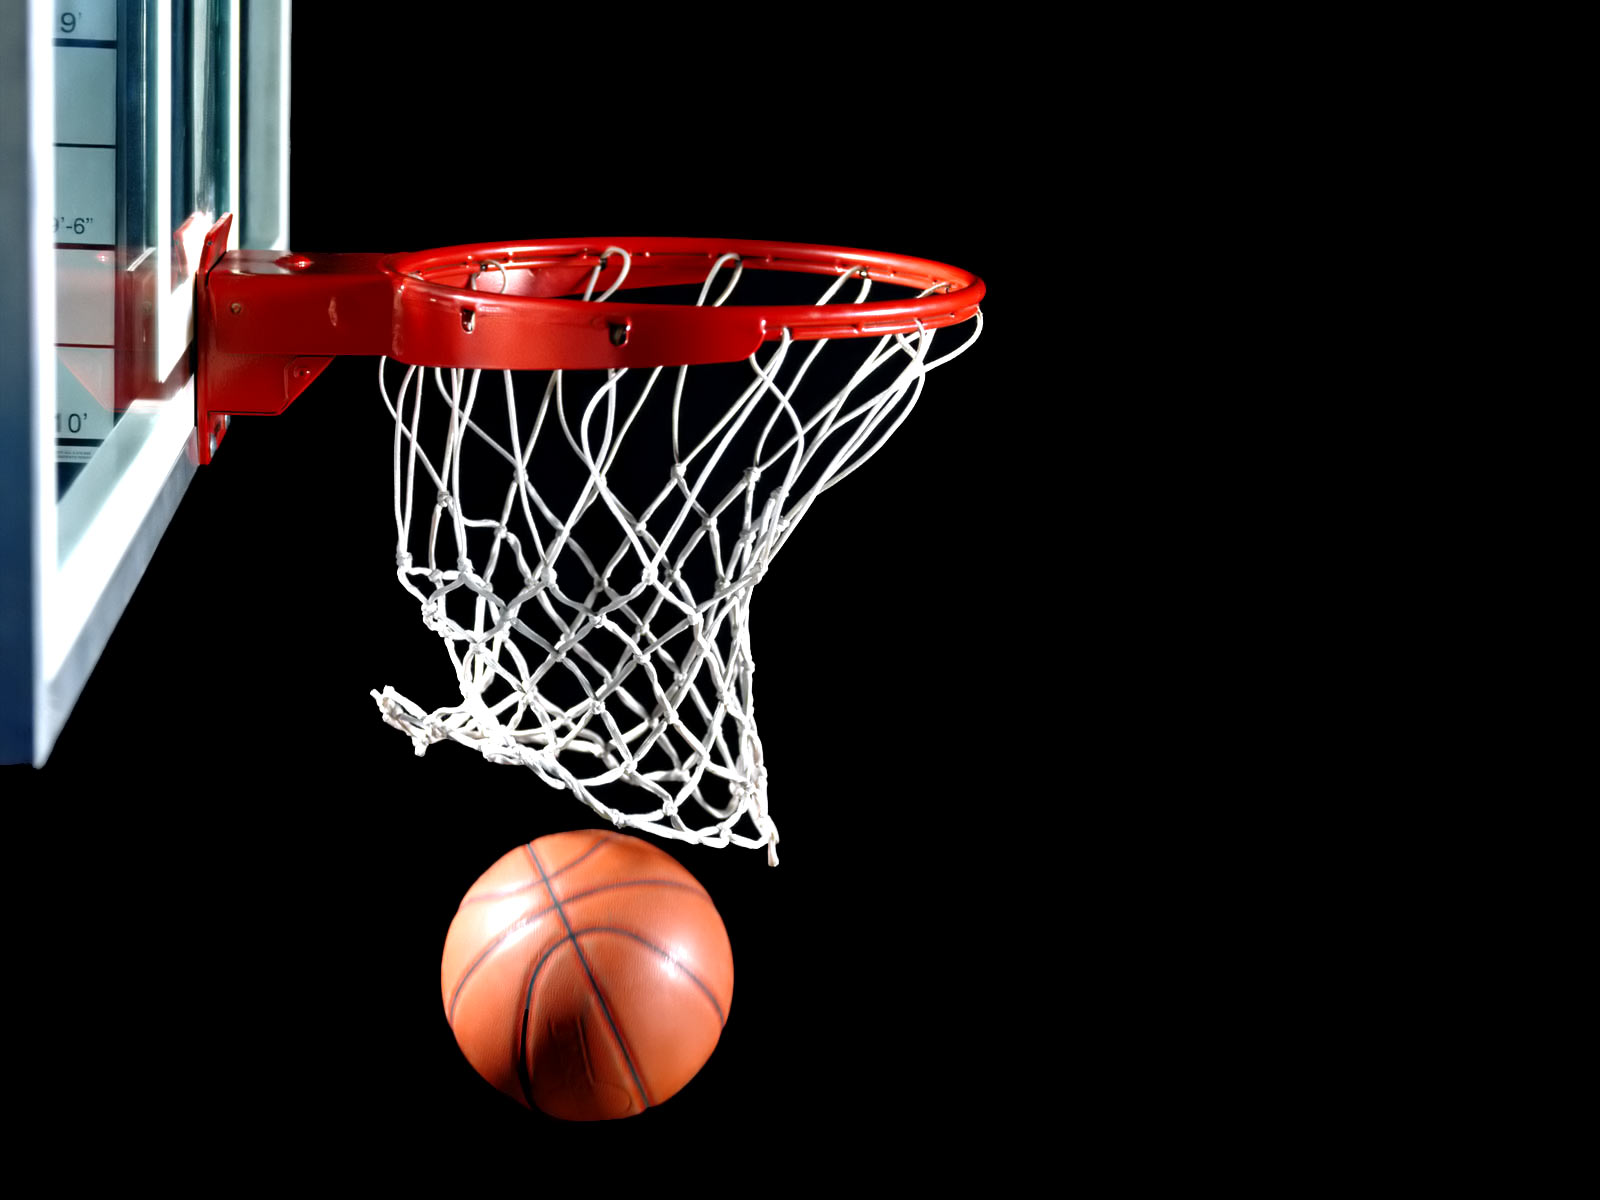 home best basketball - photo #33